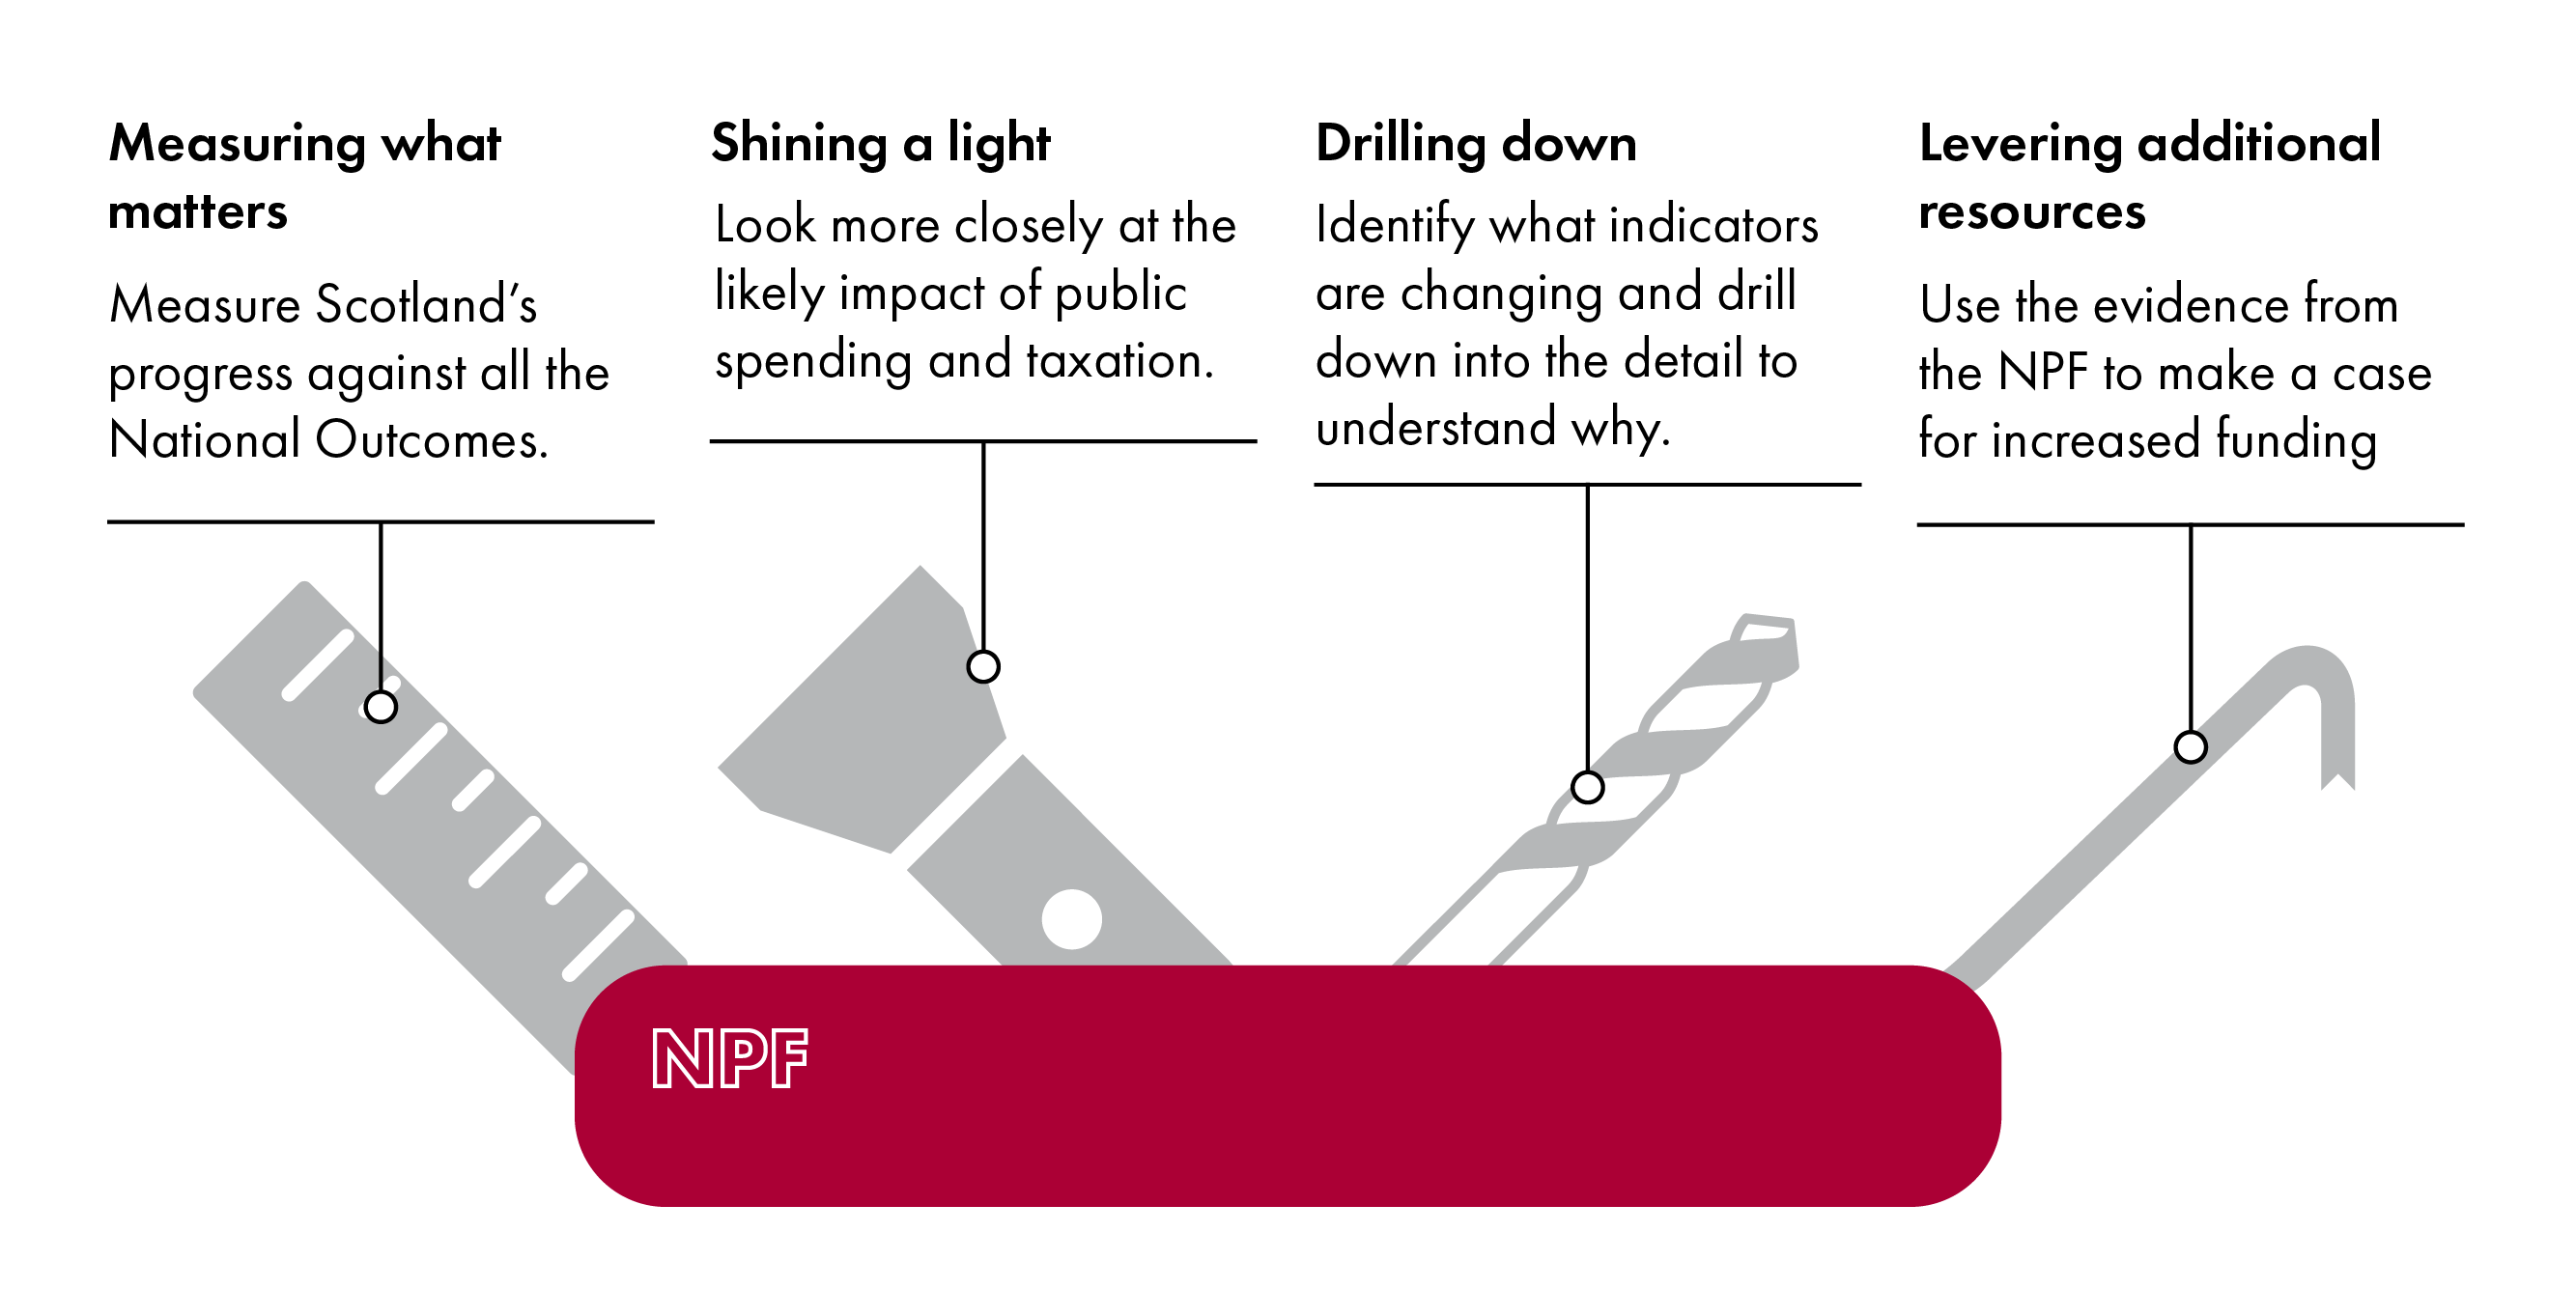 This infographic illustrates four tool functions of the NPF: measuring what matters, shining a light, drilling down and levering additional resources.